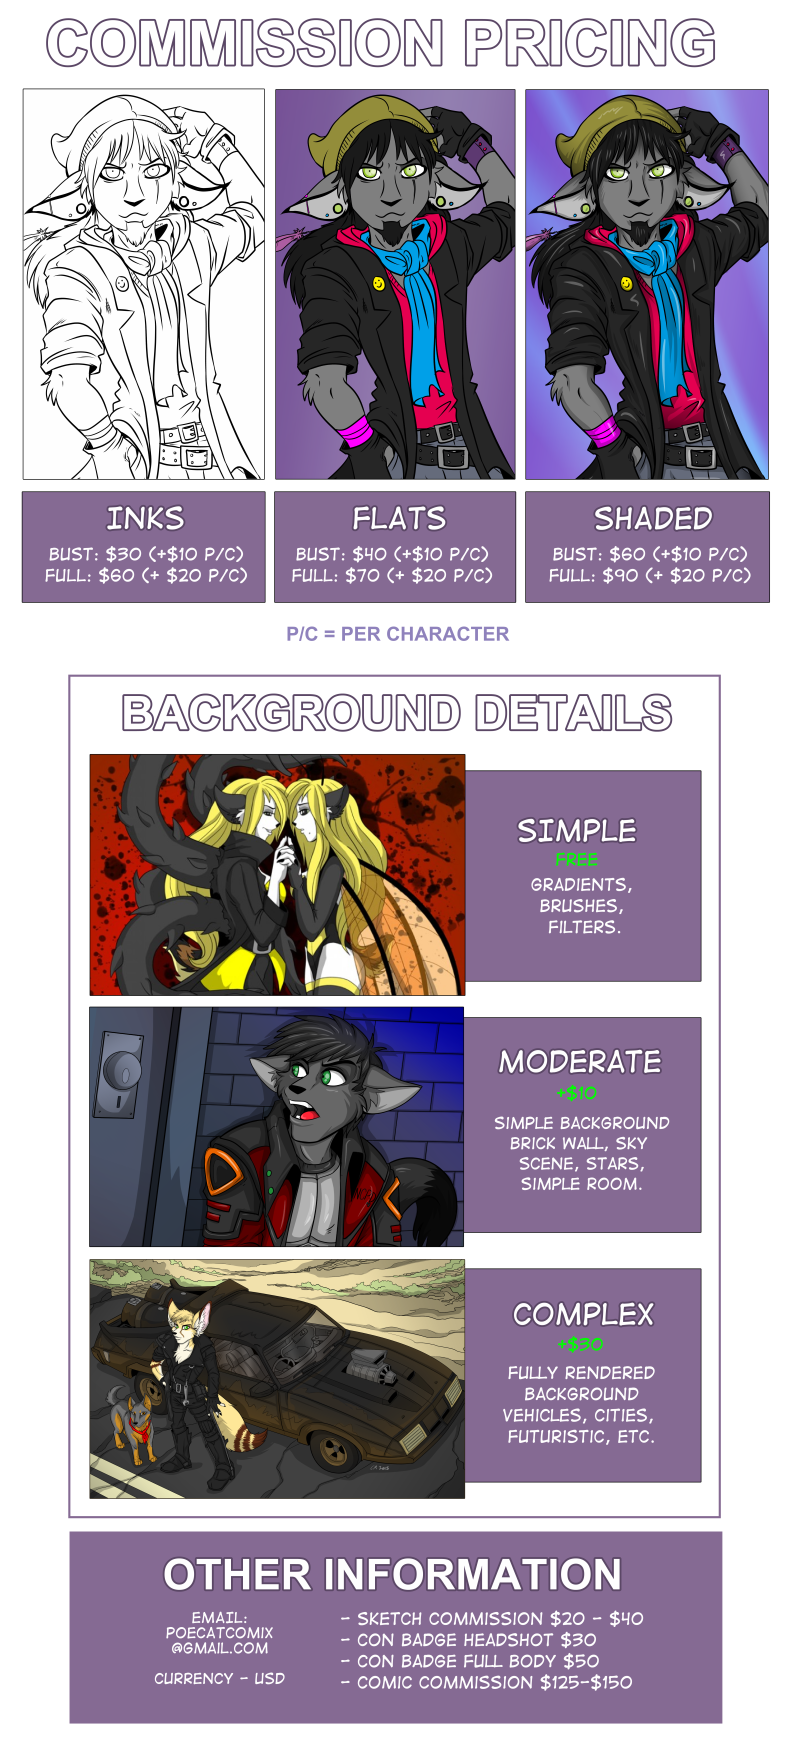 Commissions tos poecatcomix commissionpricing. Commission drawing banner library download